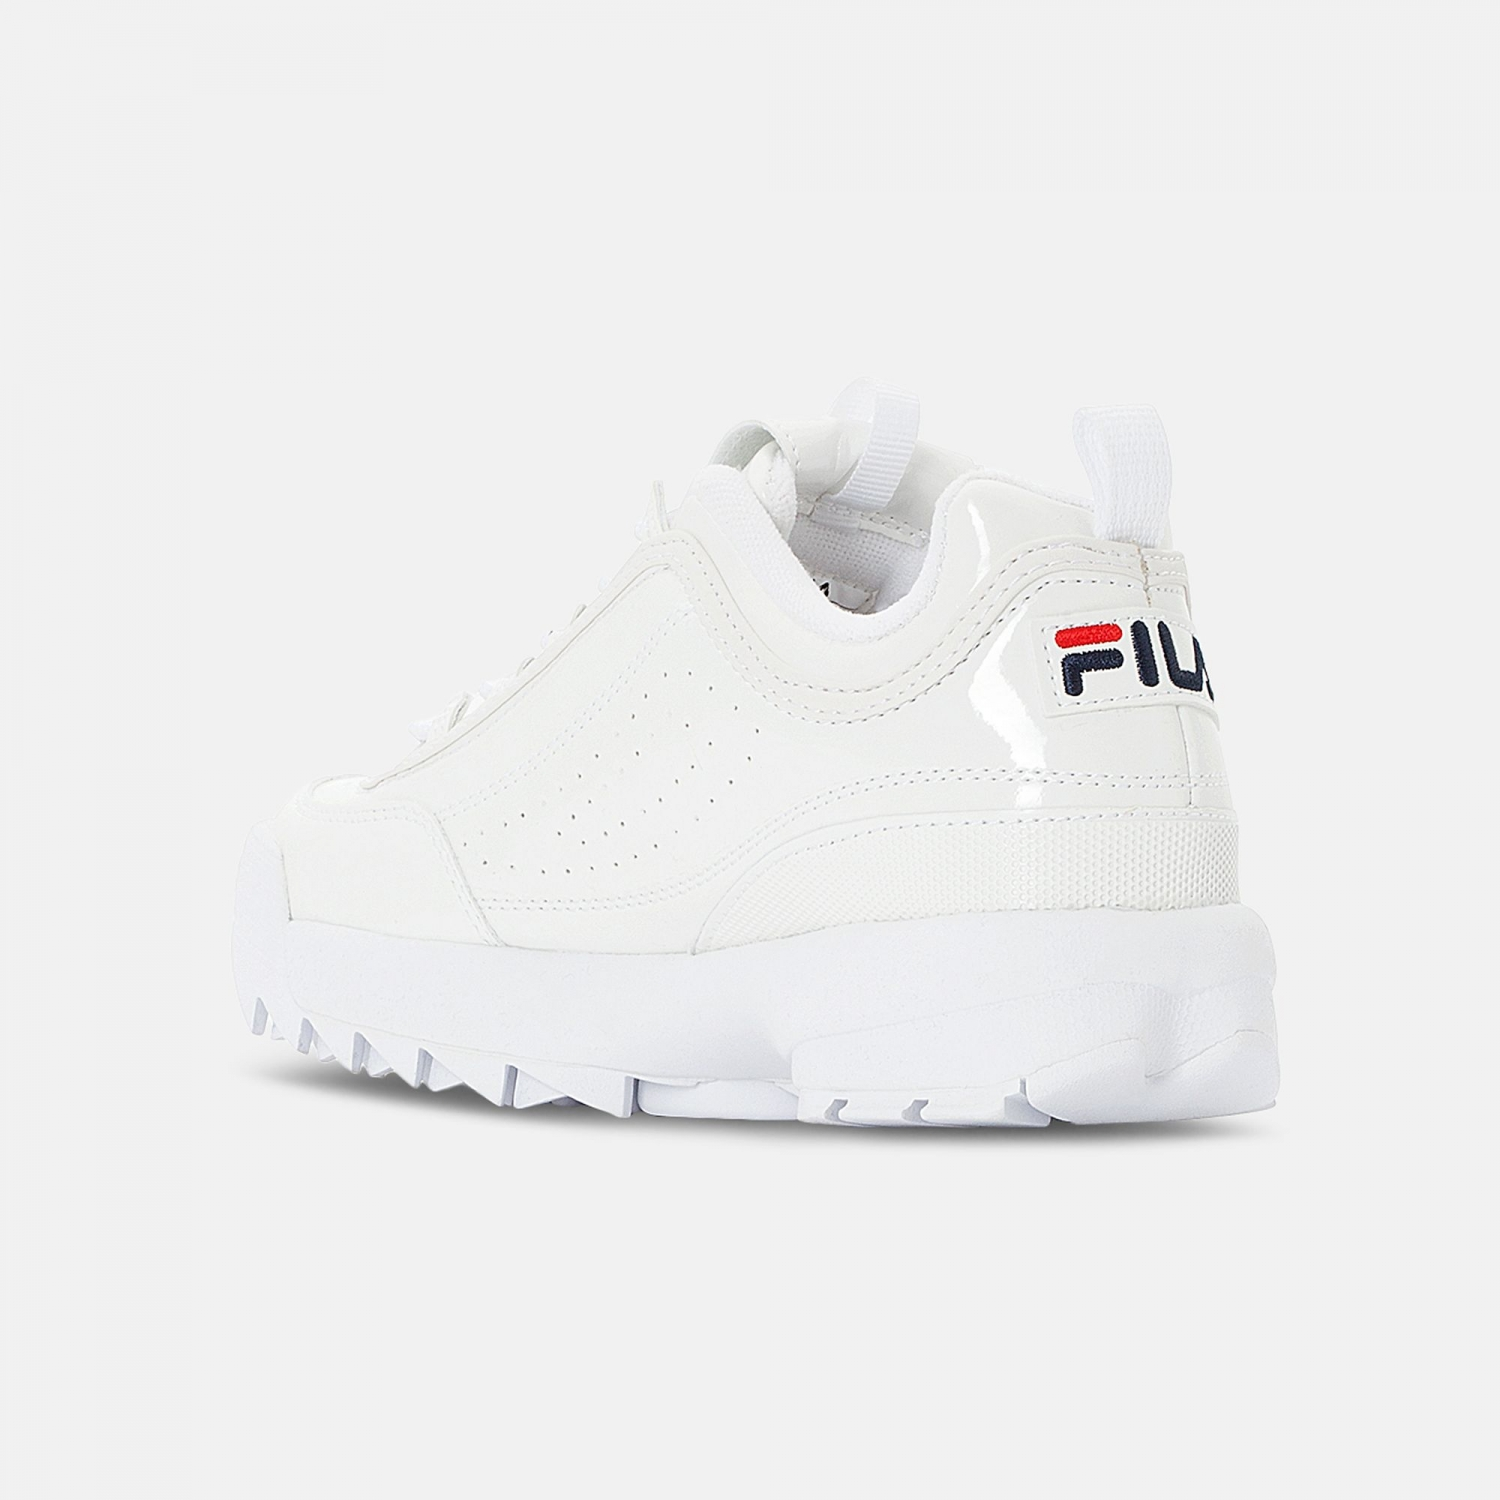 Fila Disruptor M Low Wmn shiny-white Bild 3